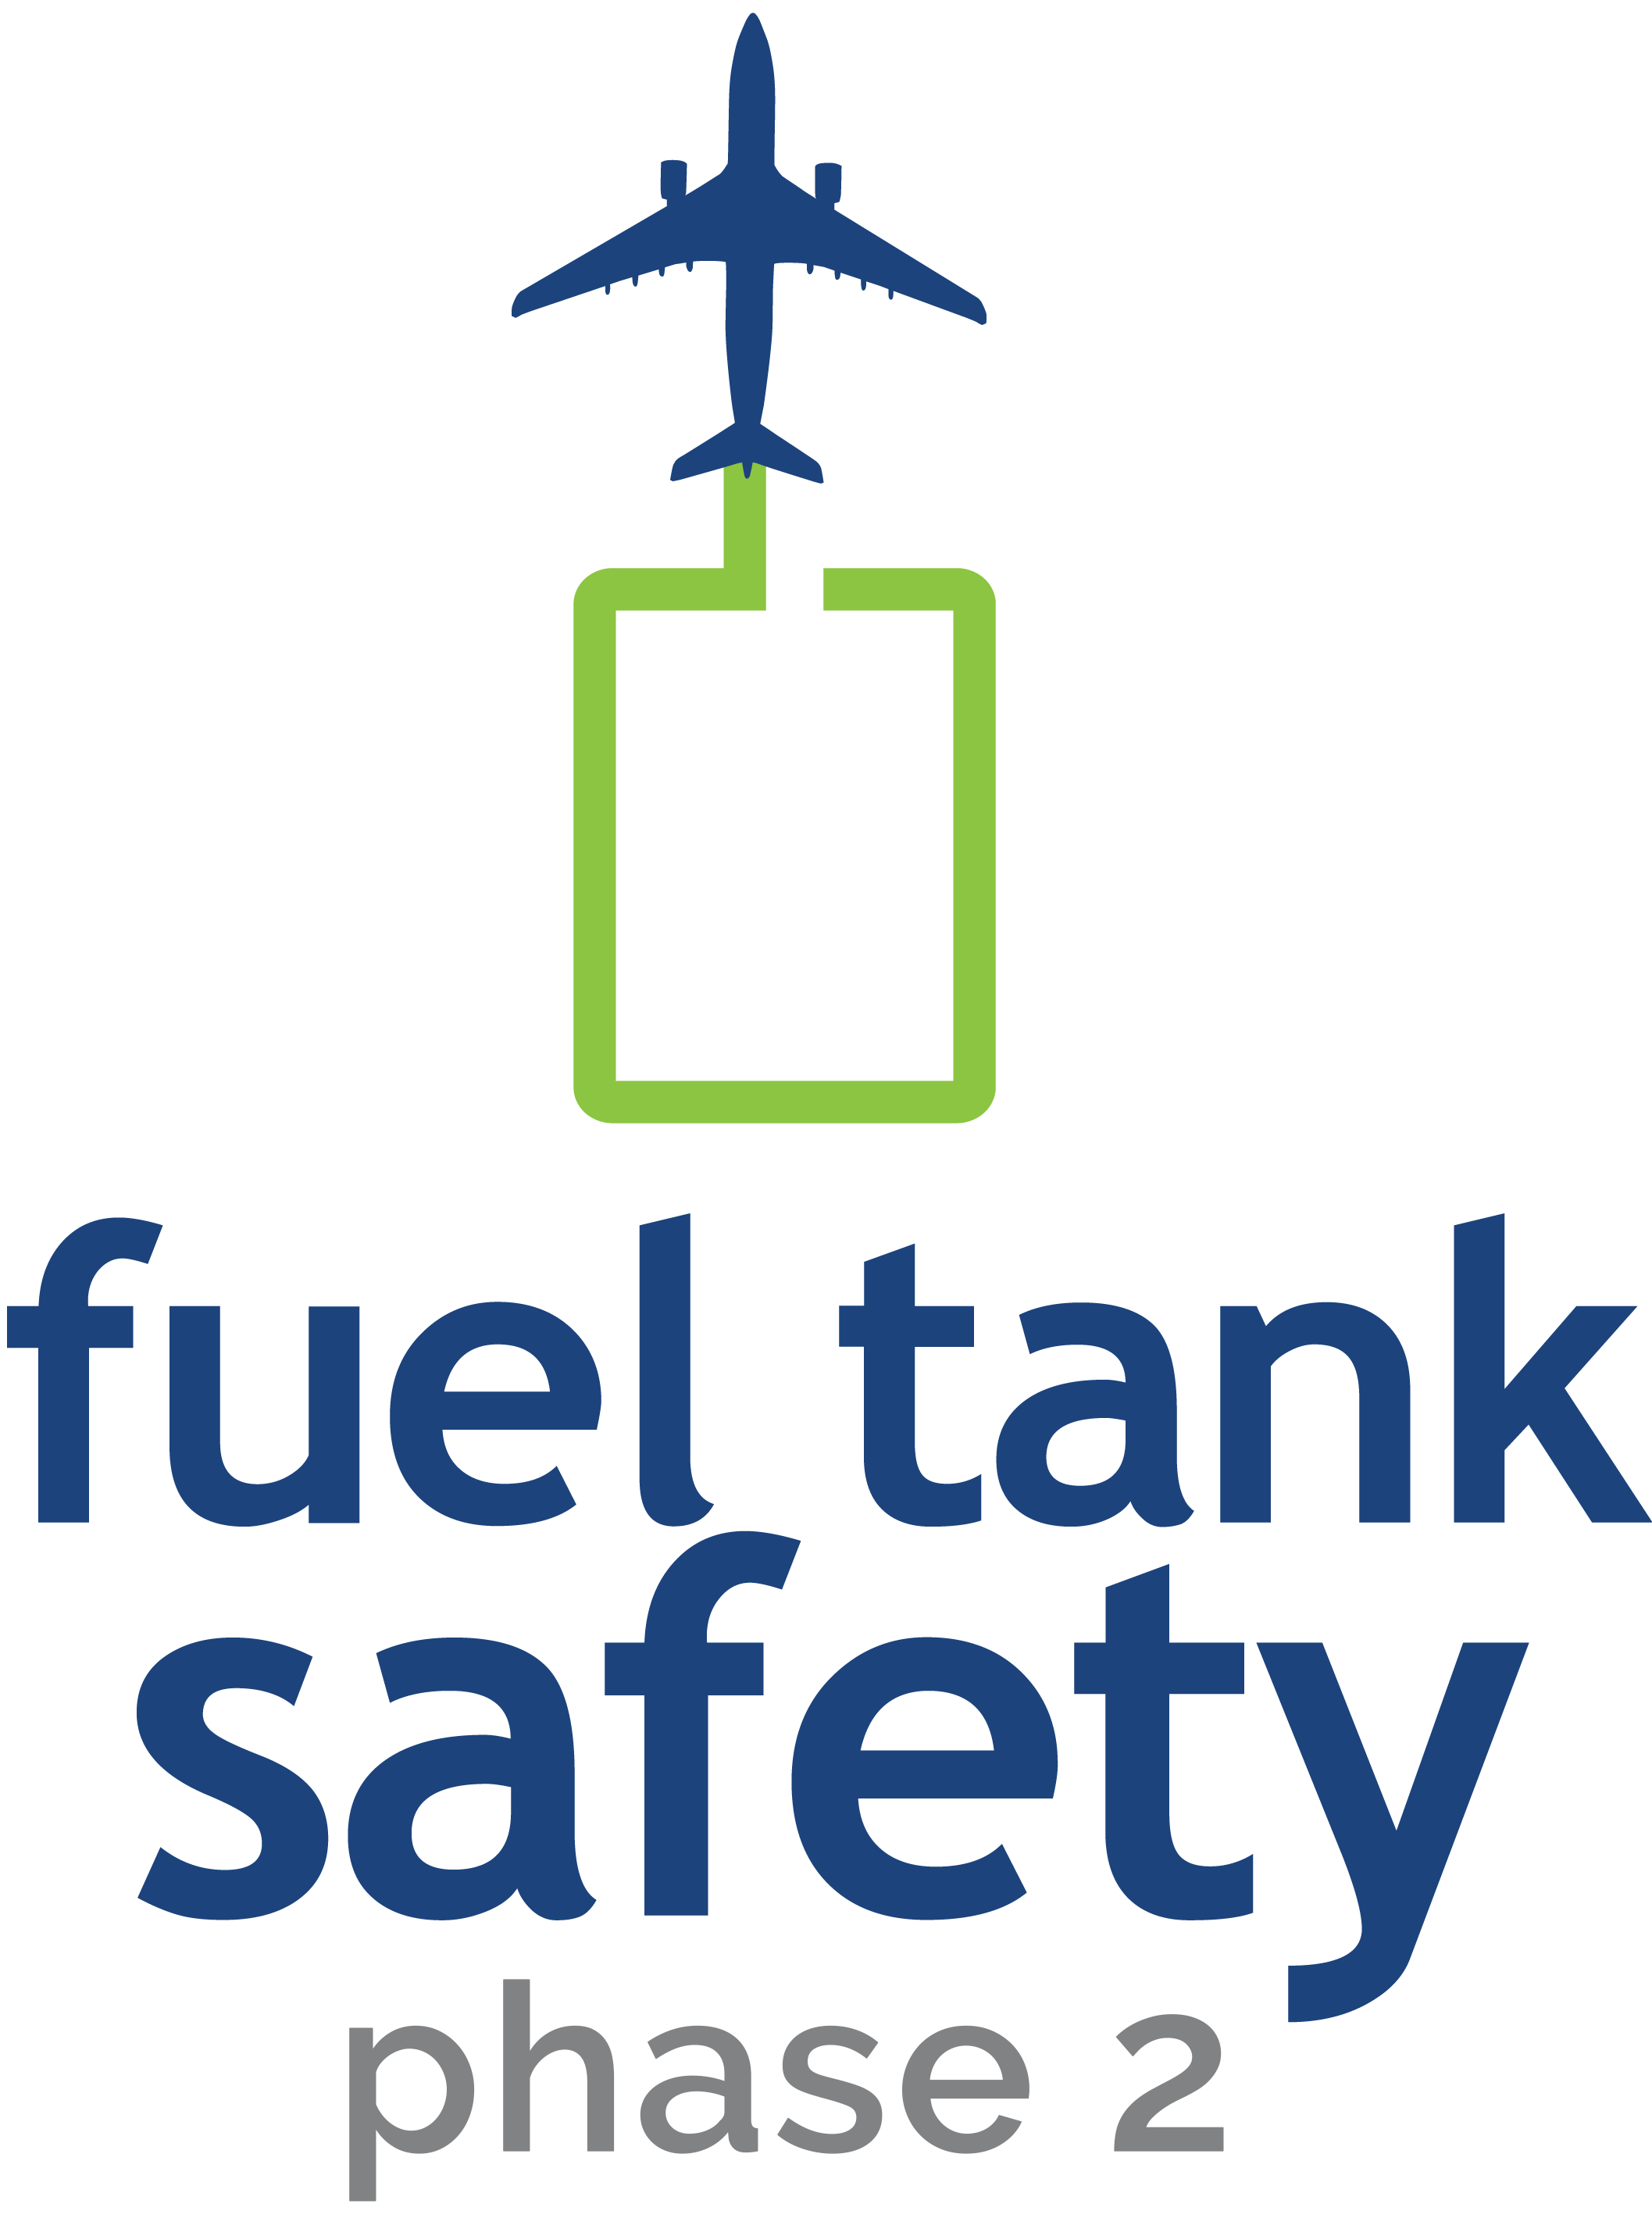 Fuel tank safety (phase 2)